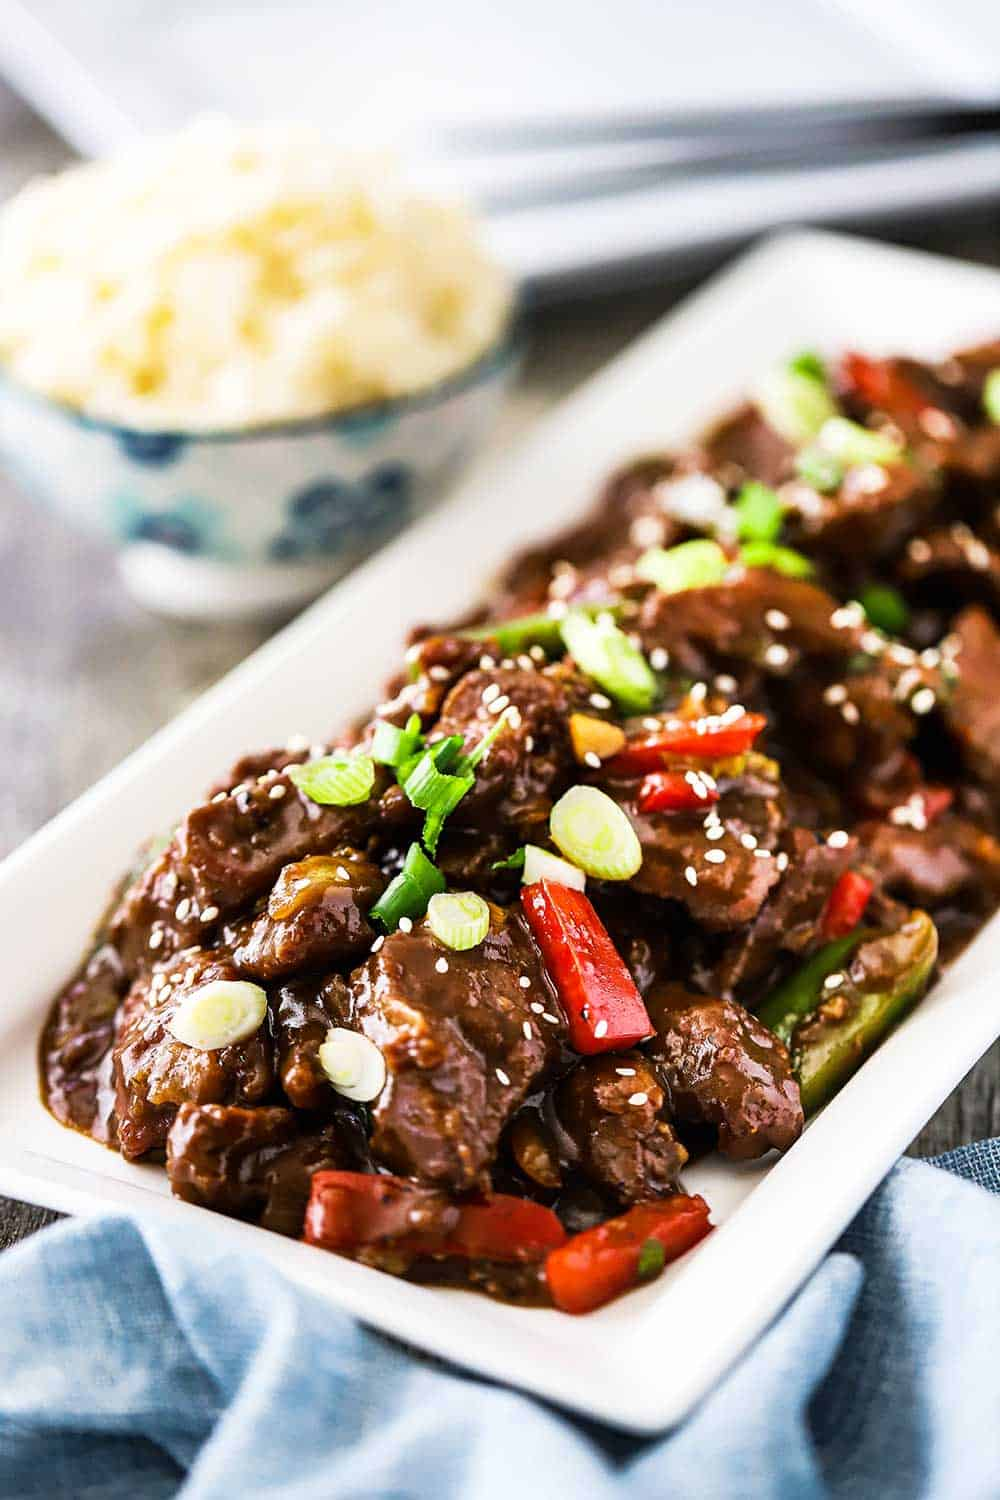 A white rectangular platter filled with prepared Mongolian beef and garnished with snipped chives and white sesame seeds.